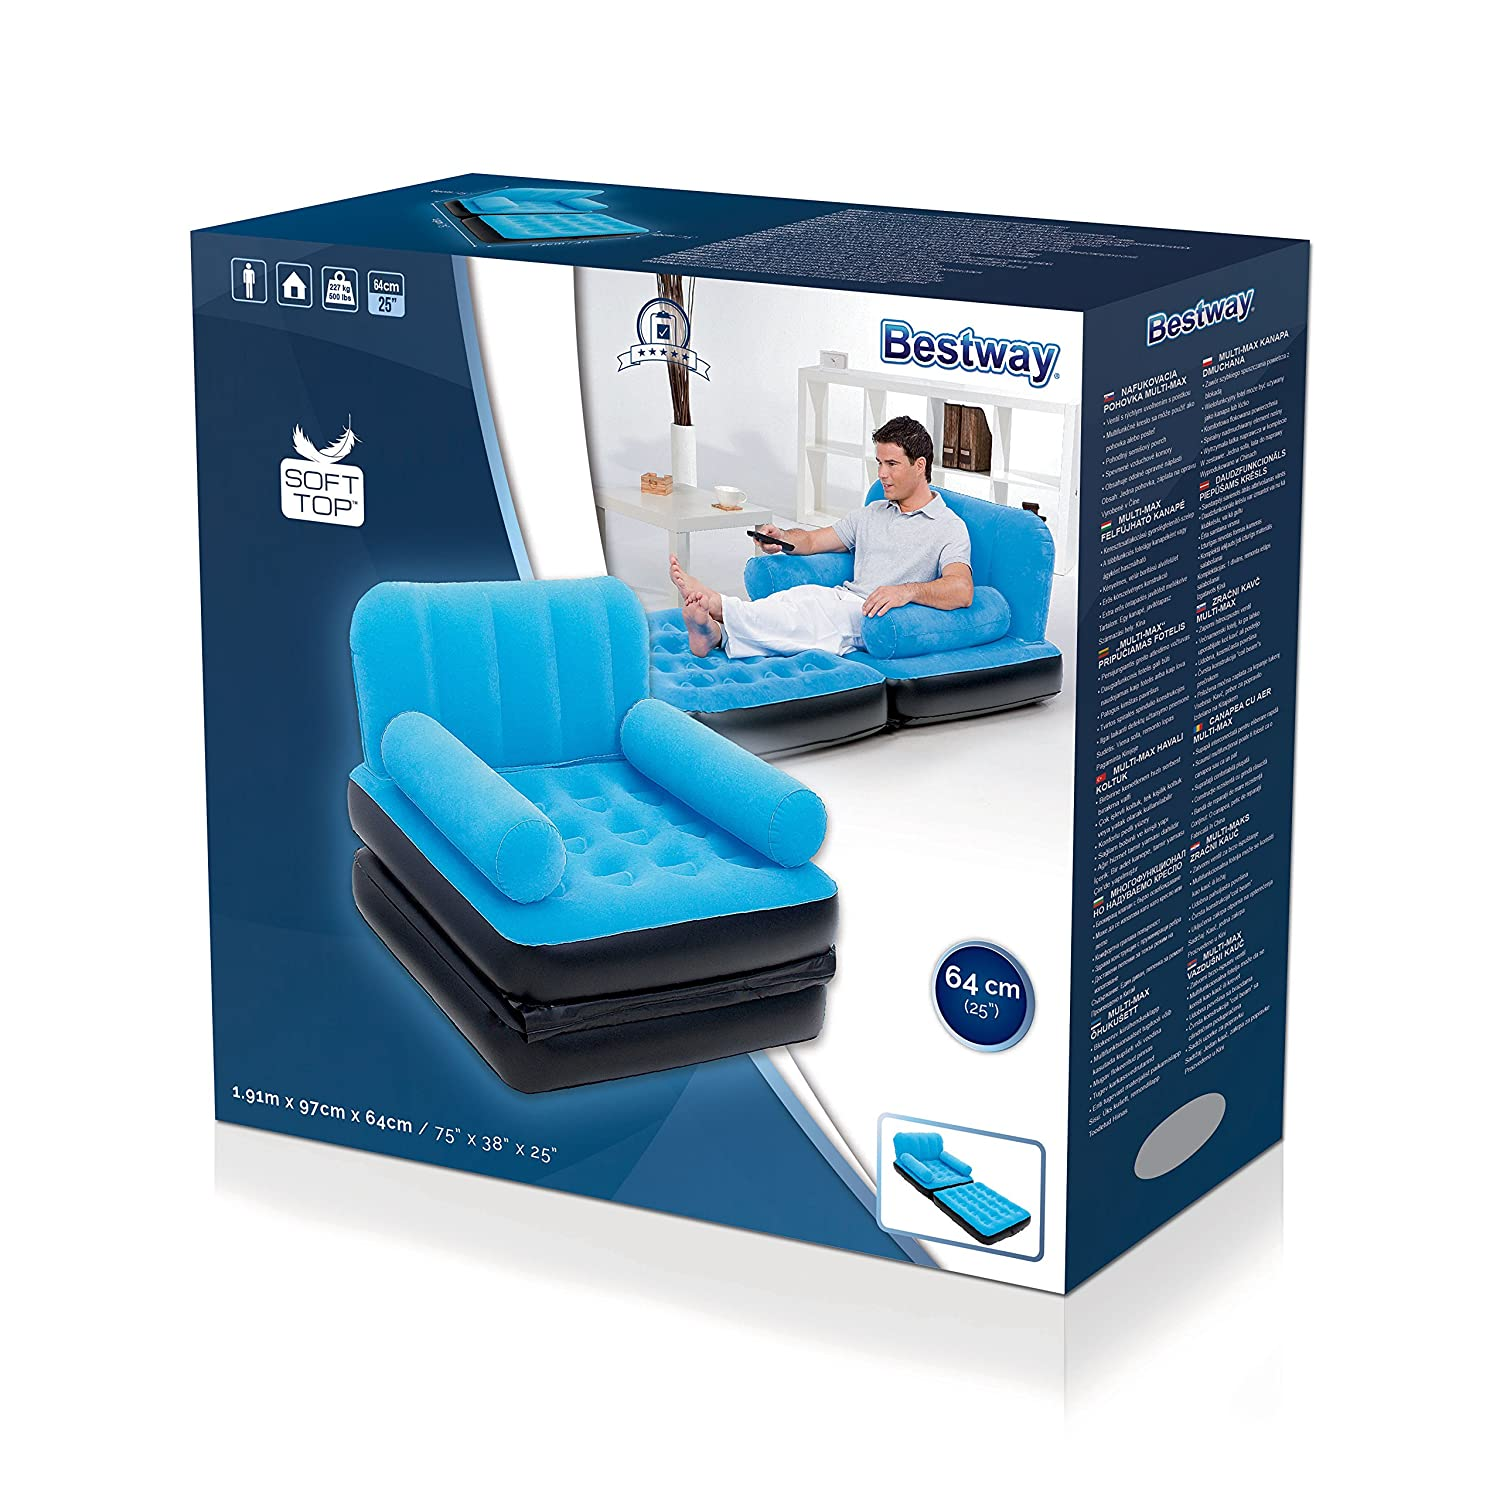 Bestway Luftbett Comfort Quest Multifuntions Multi Max - Colchón ...